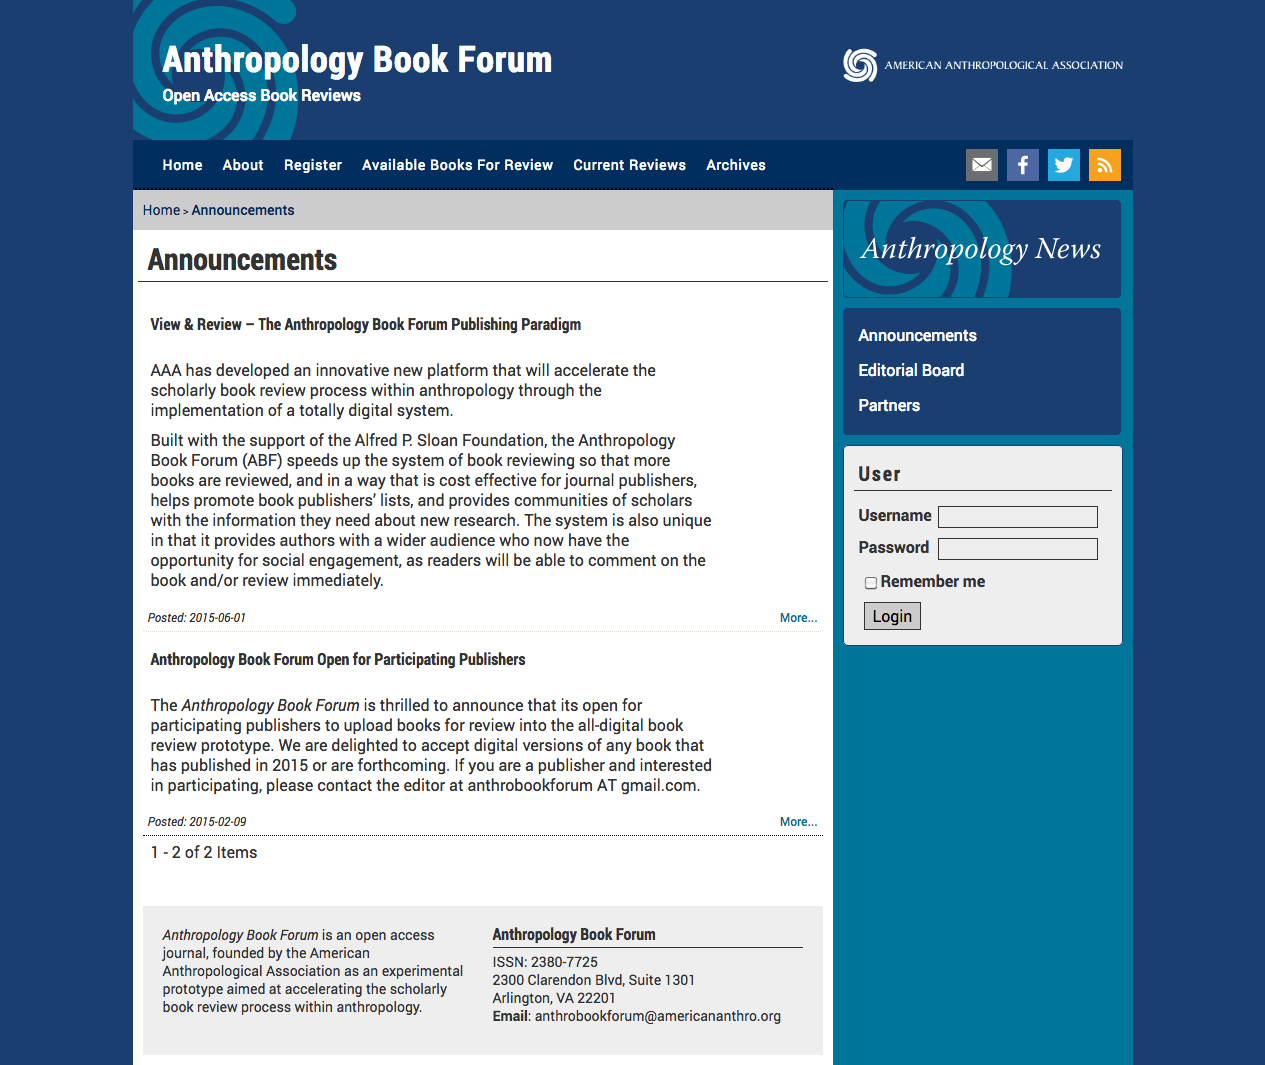 Anthropology Book Forum